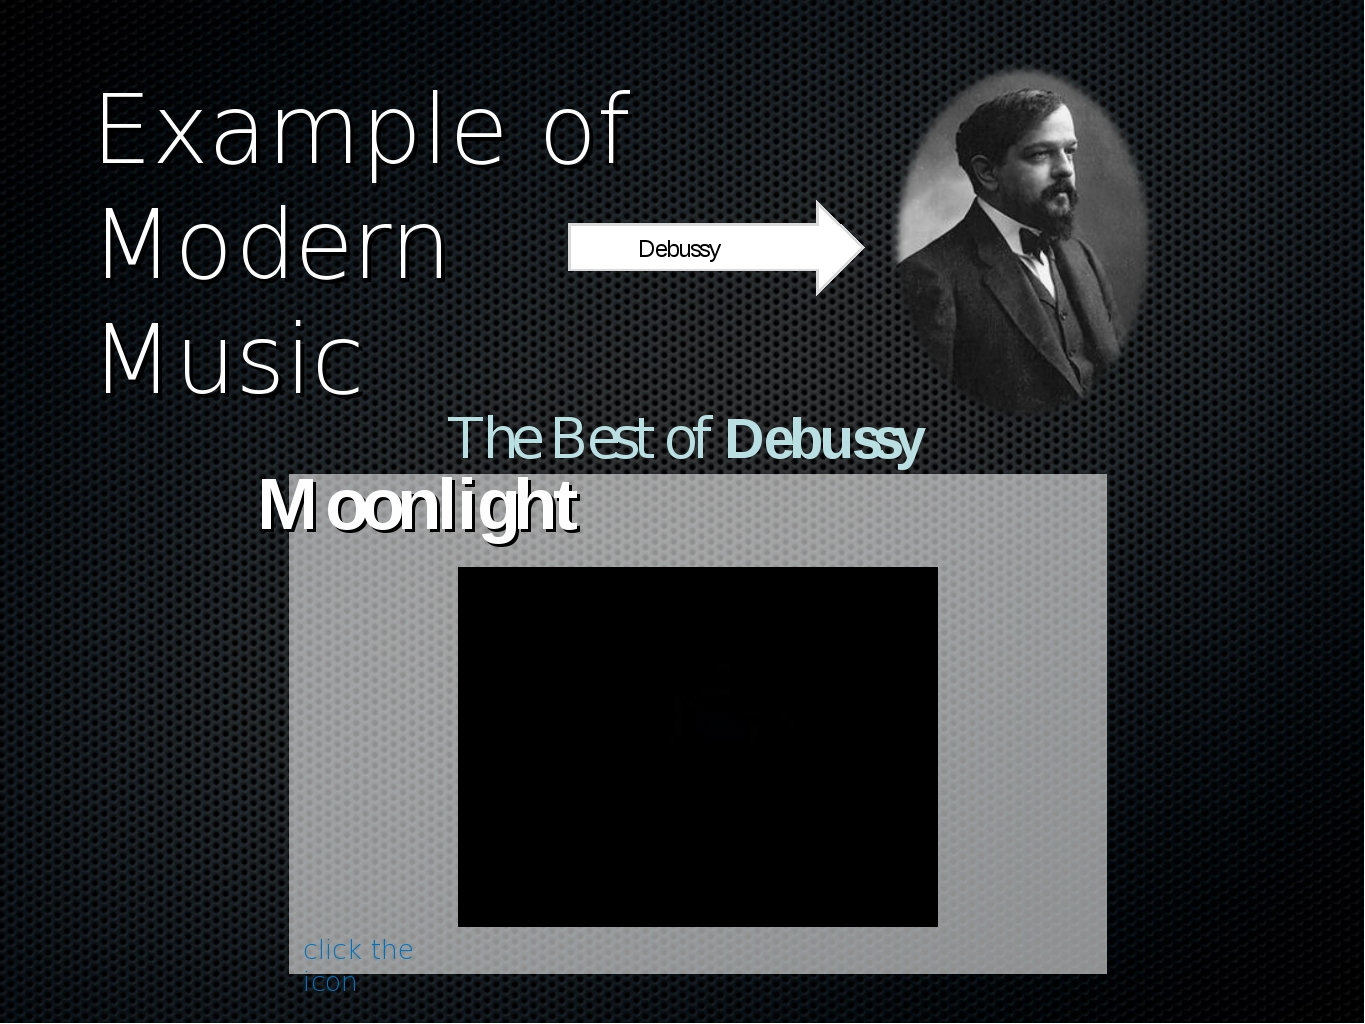 Example of Modern Music Debussy The Best of Debussy Moonlight click the icon